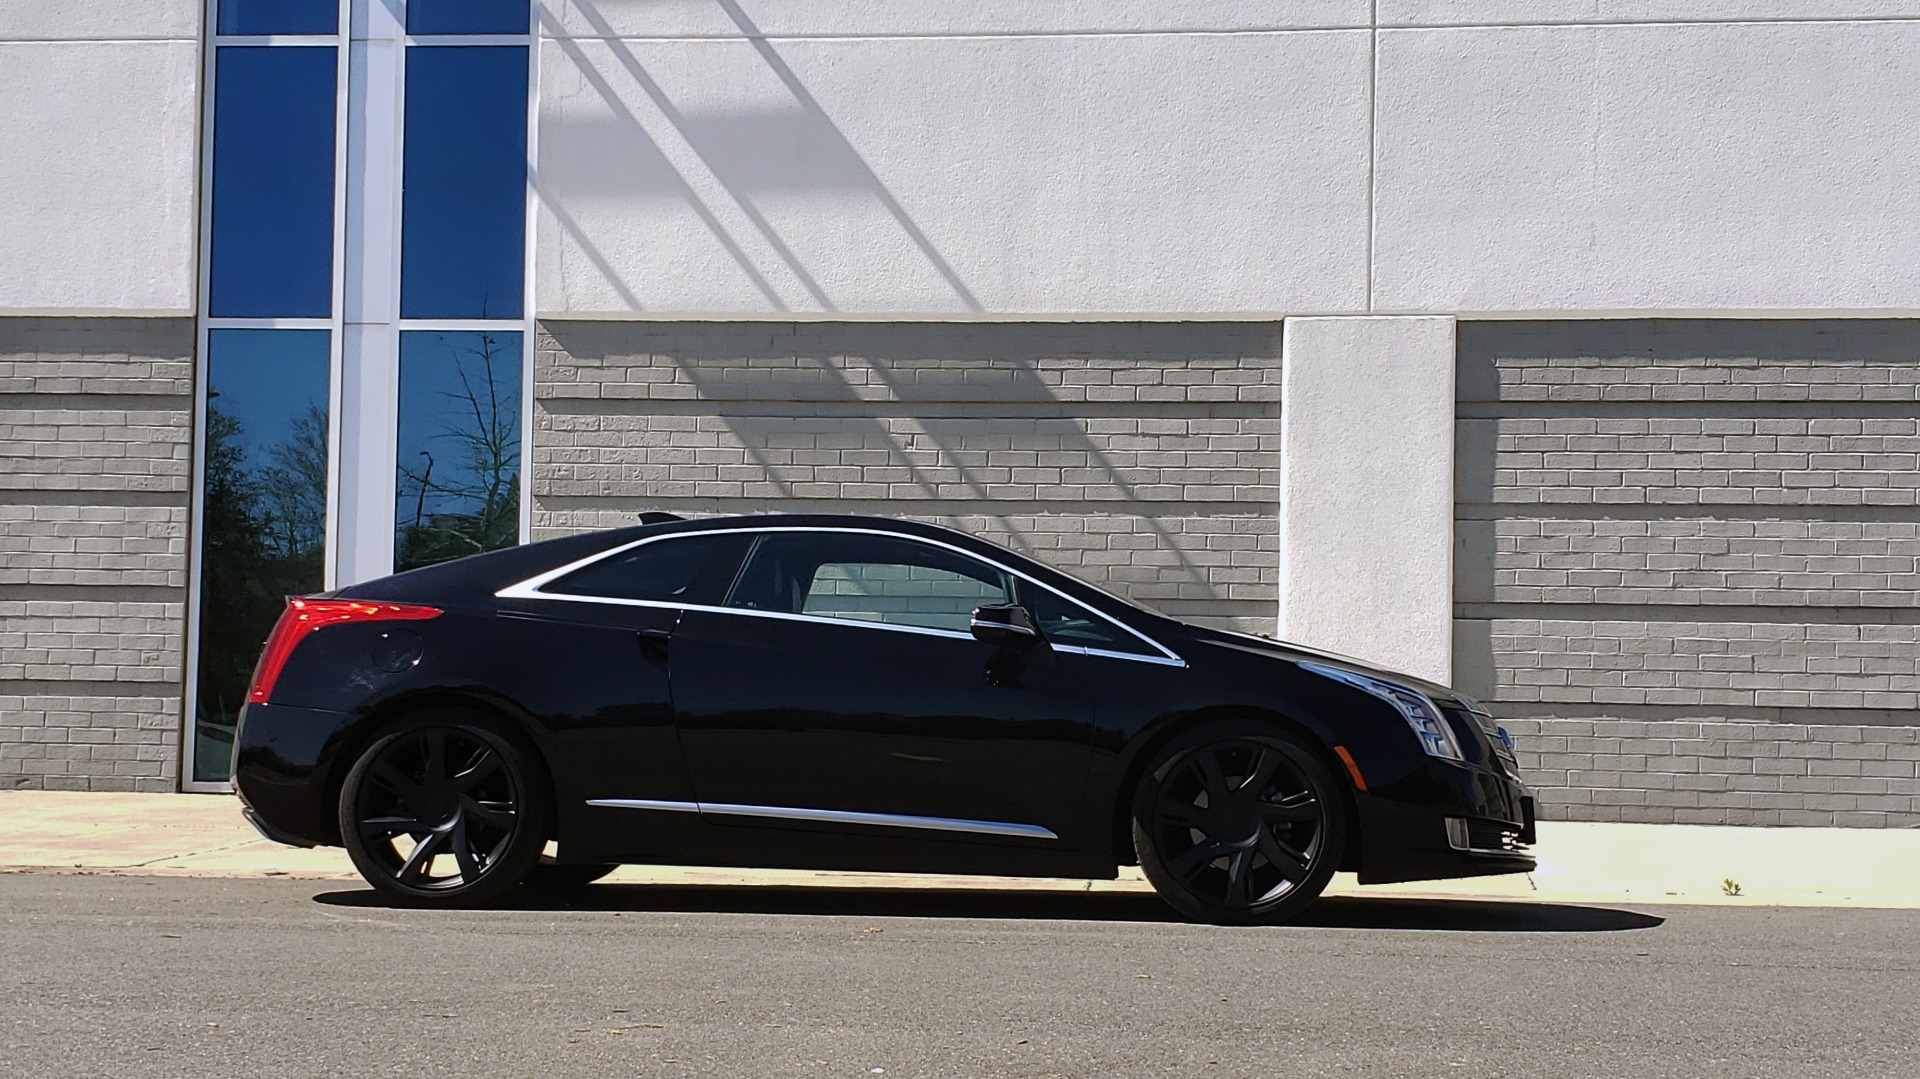 Used 2014 Cadillac ELR 2DR COUPE / HYBRID / NAV / BOSE / HEATED SEATS / REARVIEW for sale $19,995 at Formula Imports in Charlotte NC 28227 6